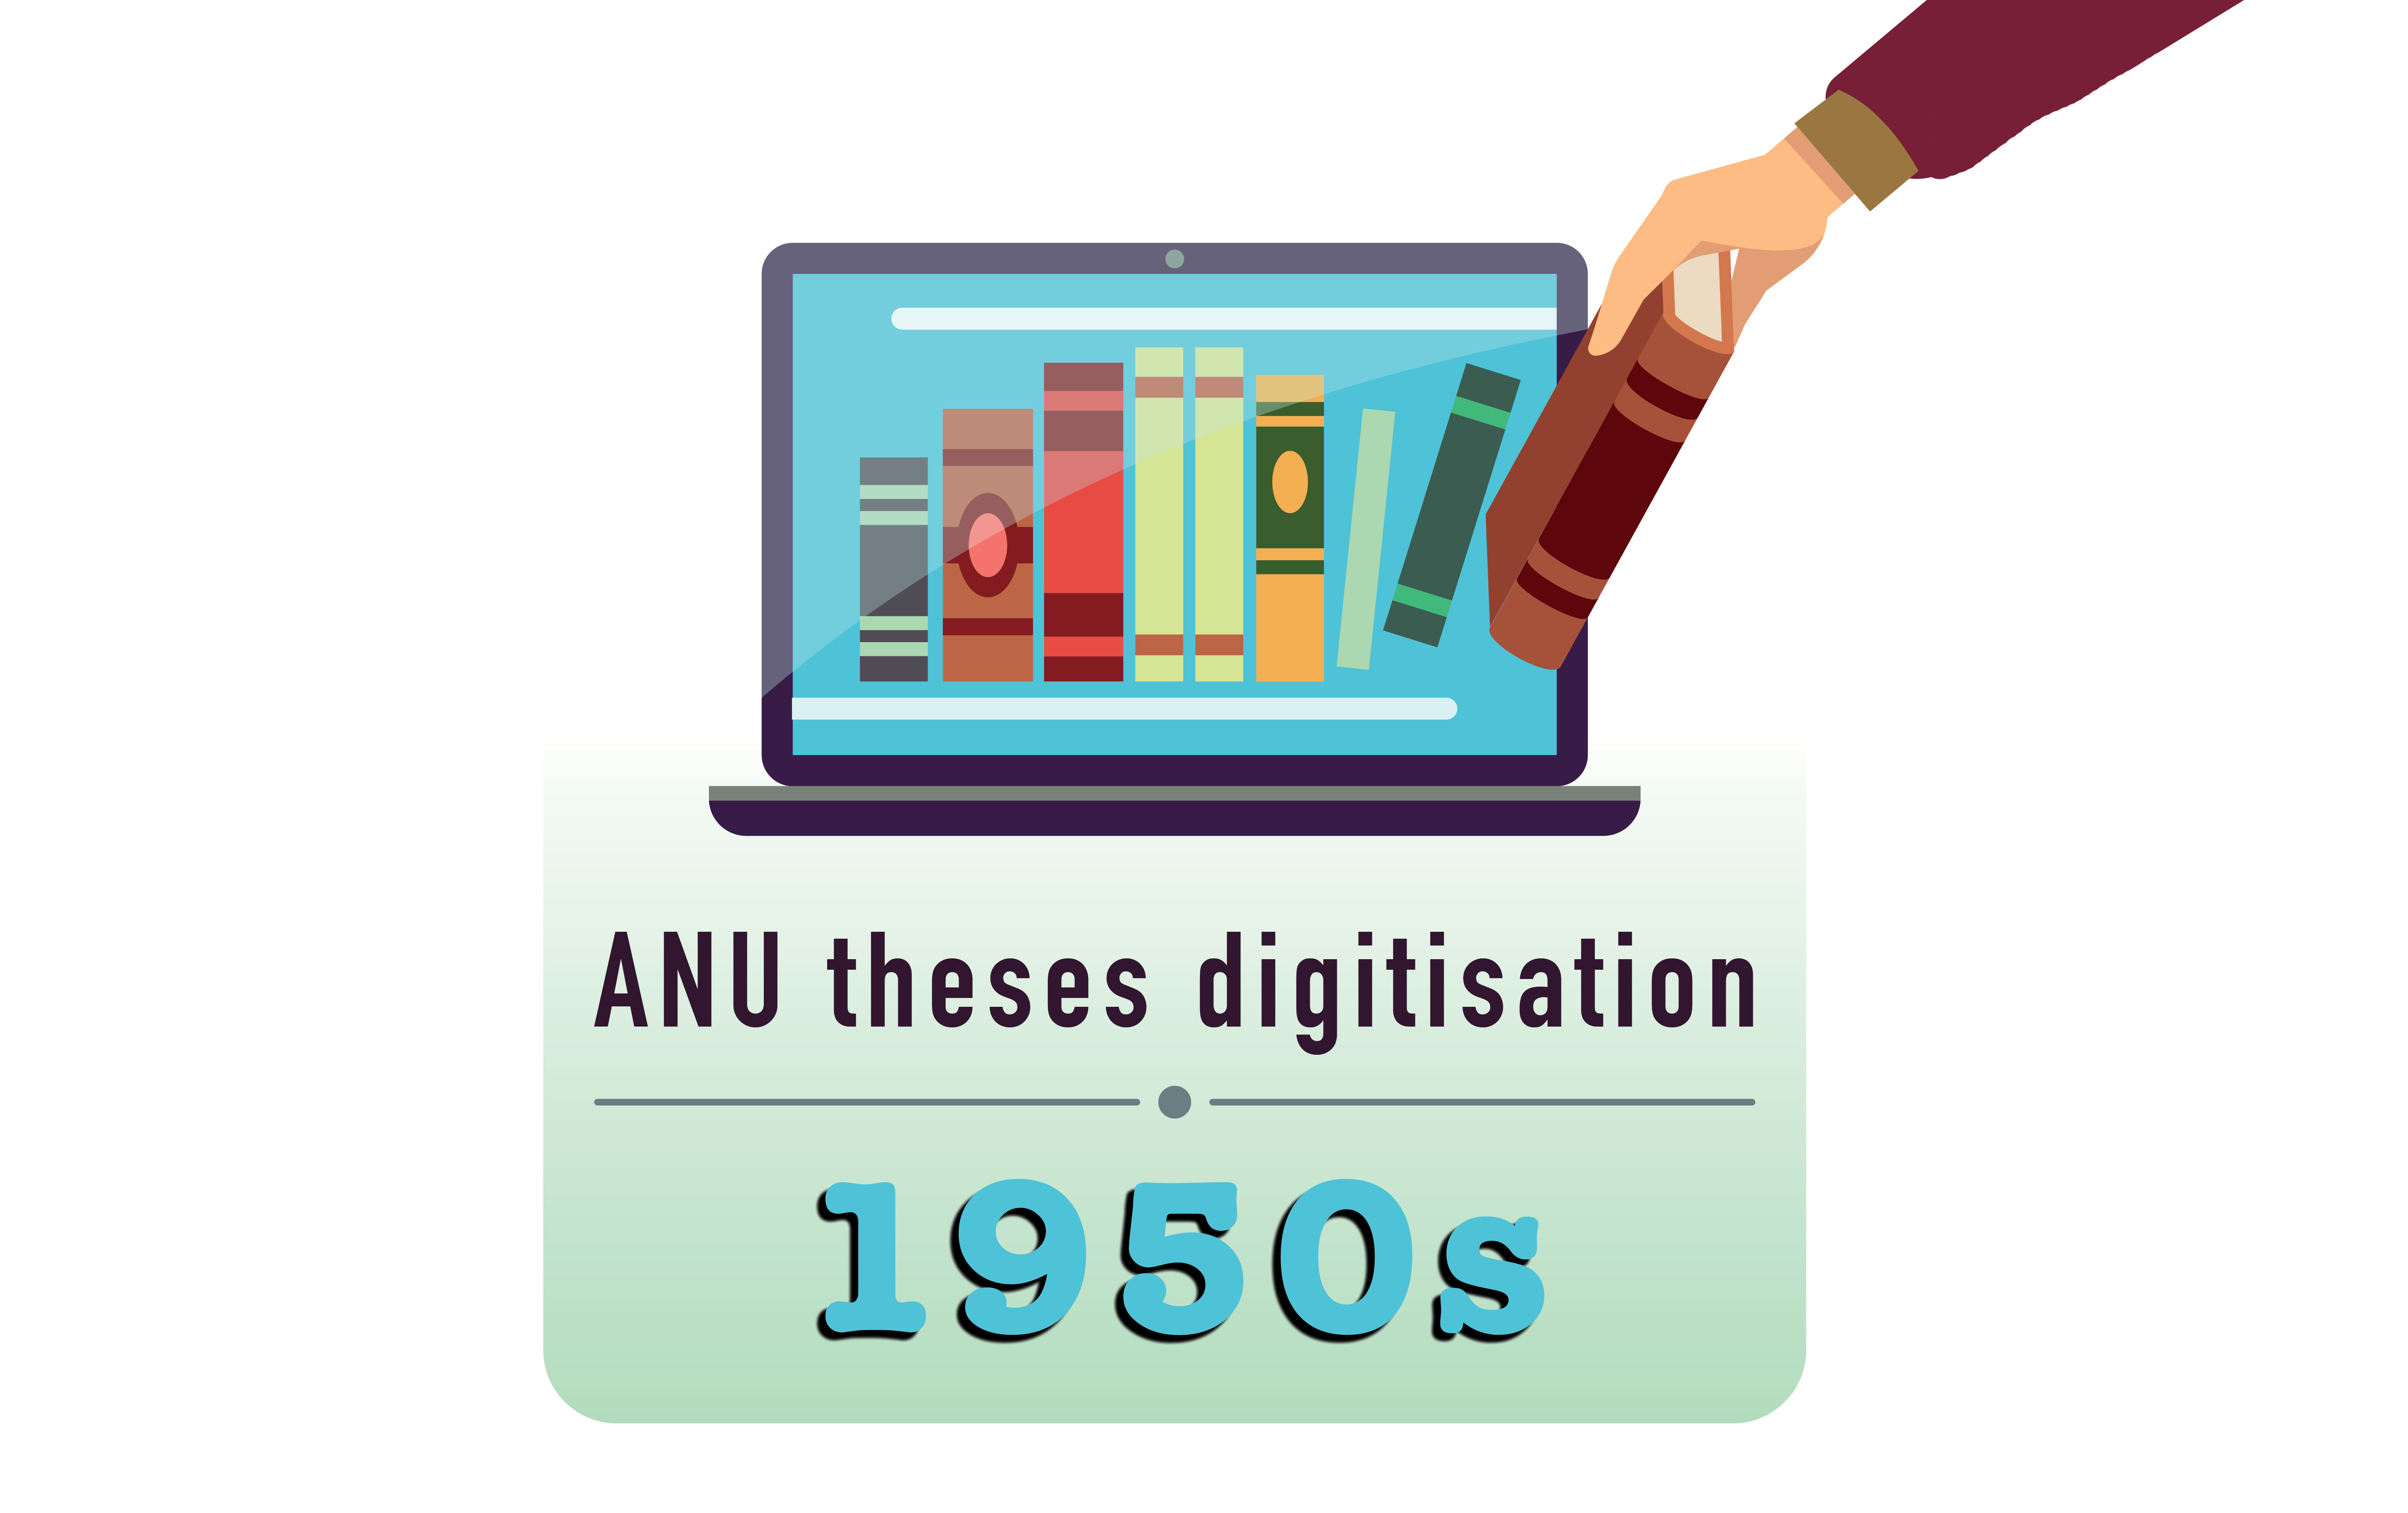 ANU theses digitisation - the 1950s